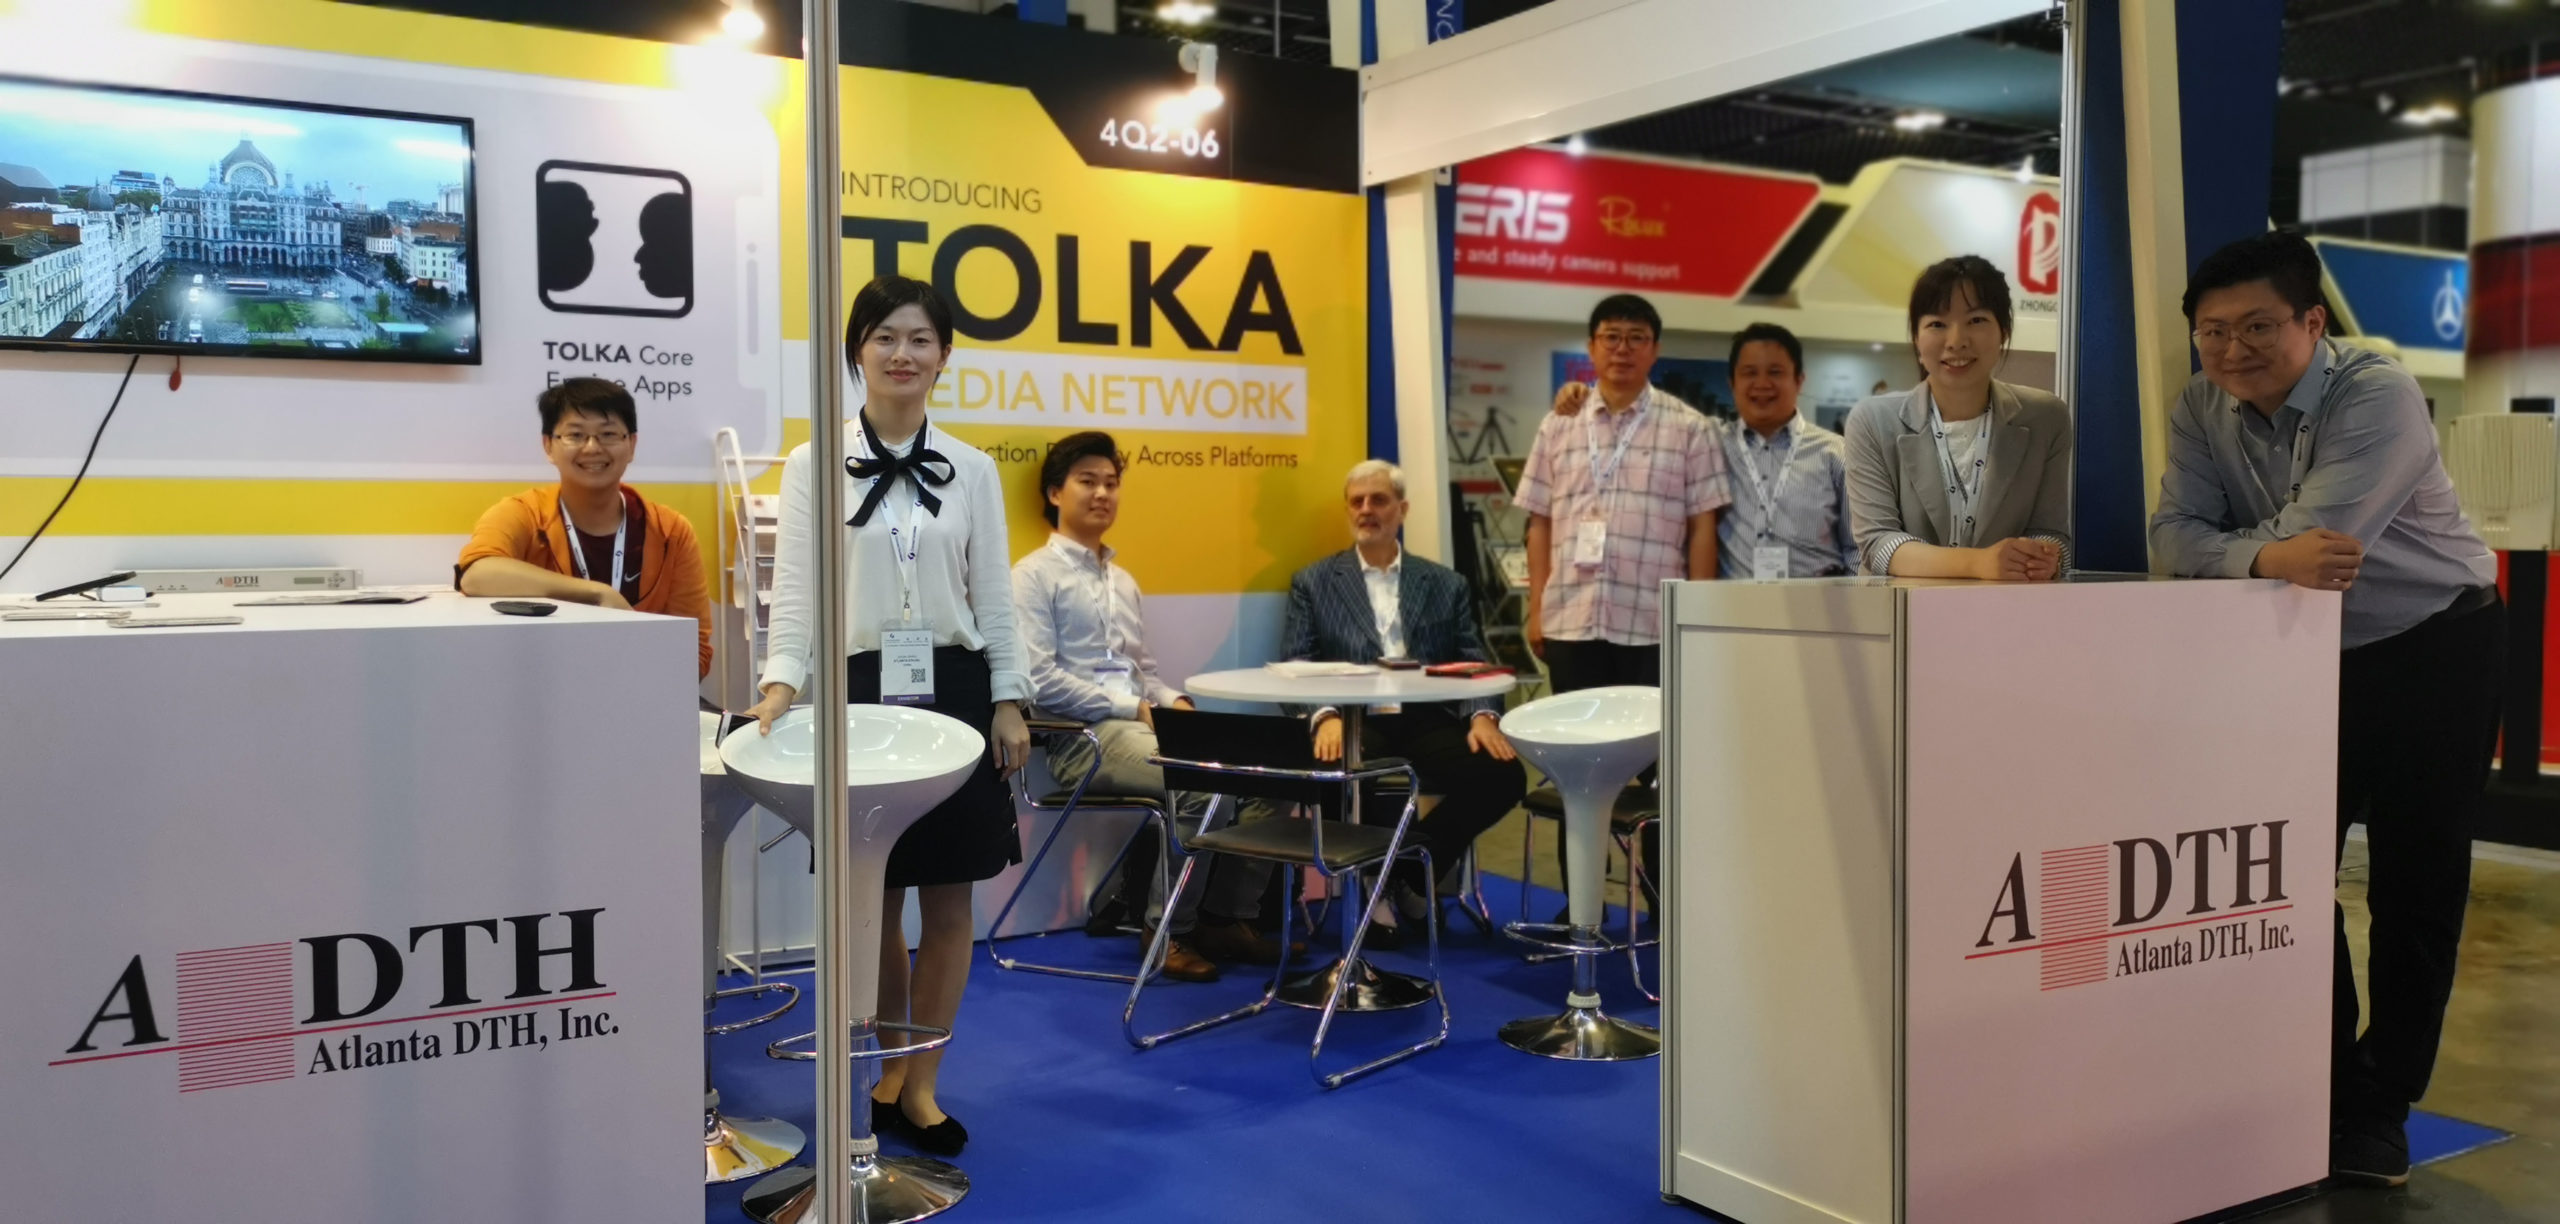 Broadcast Asia 2019 Reflects Dynamic APAC Market Conditions forADTH